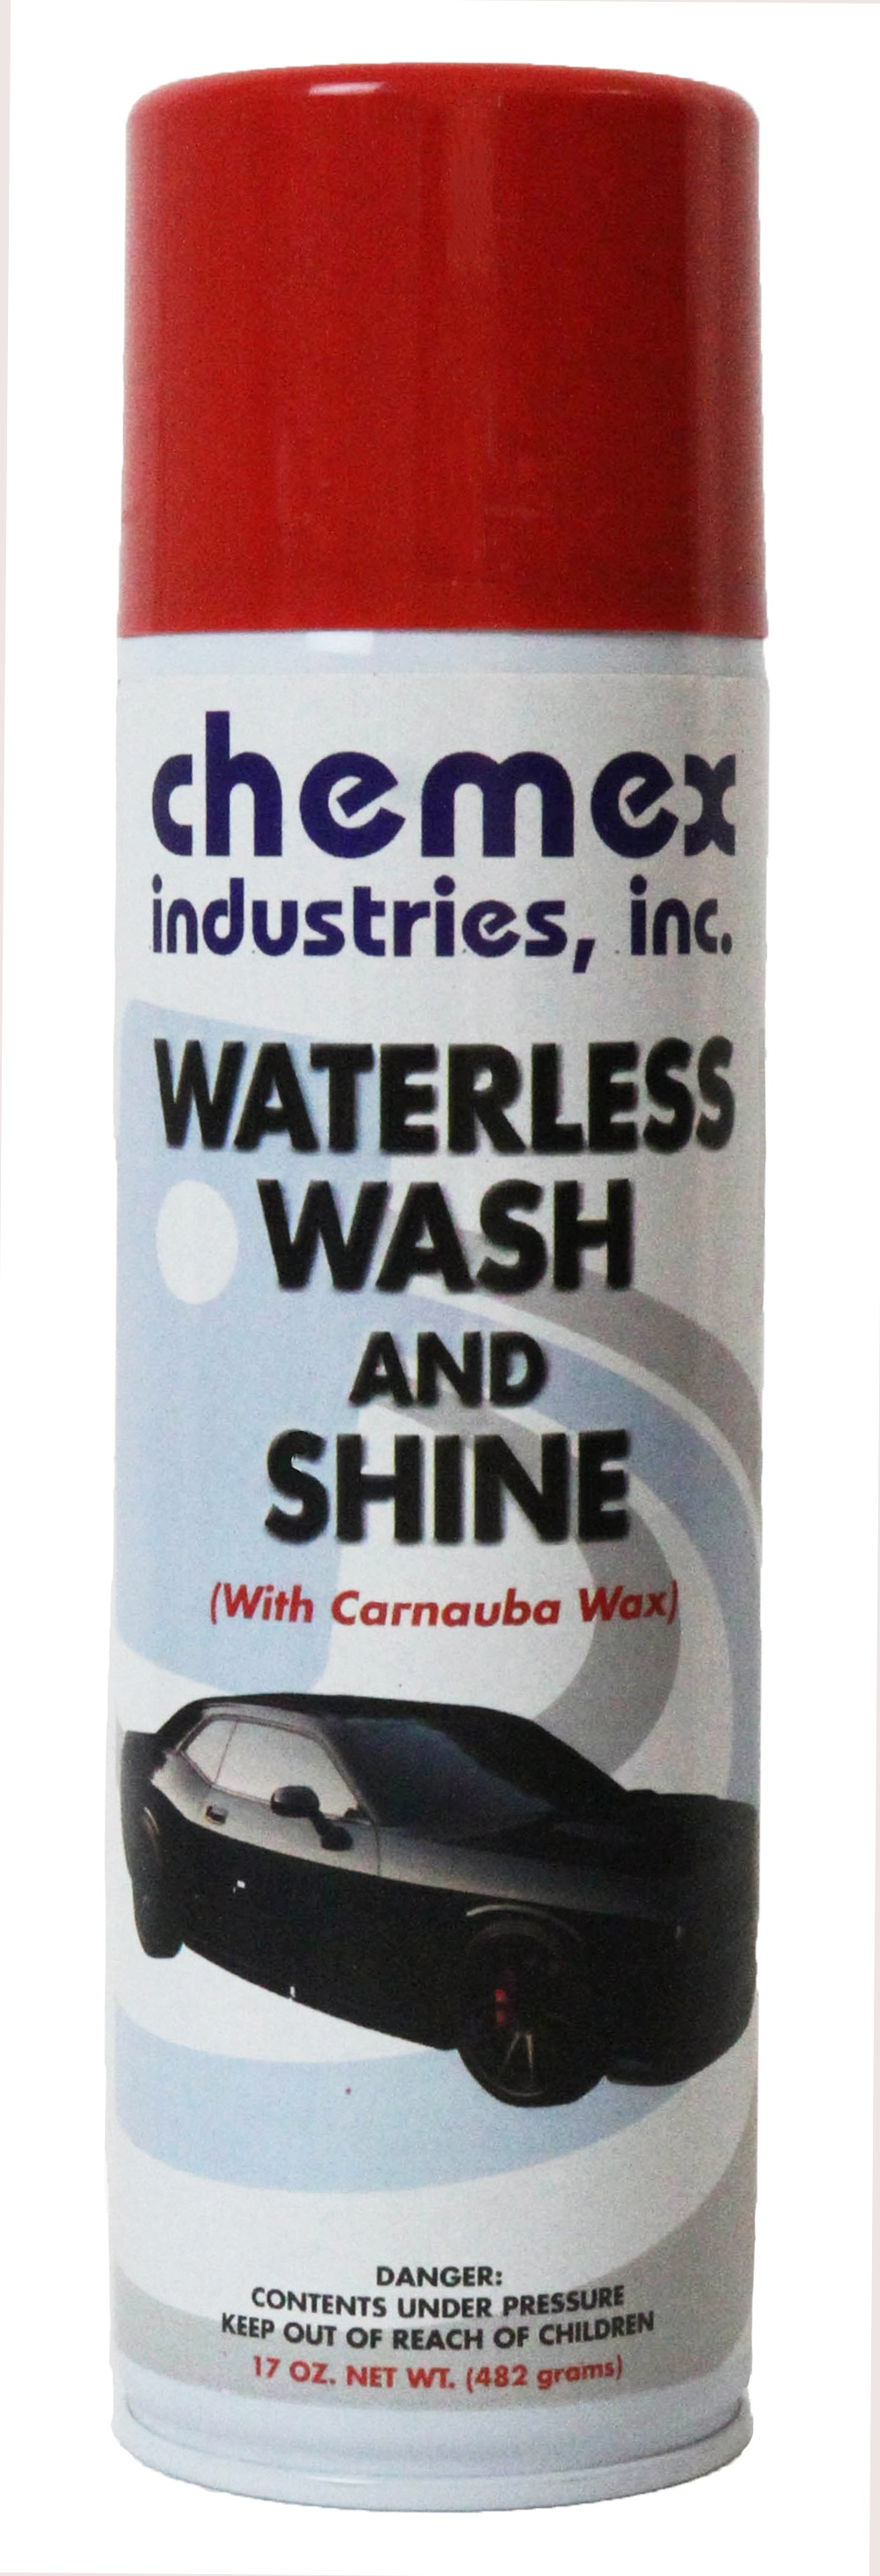 Waterless Wash and Shine_FA_CROPPED